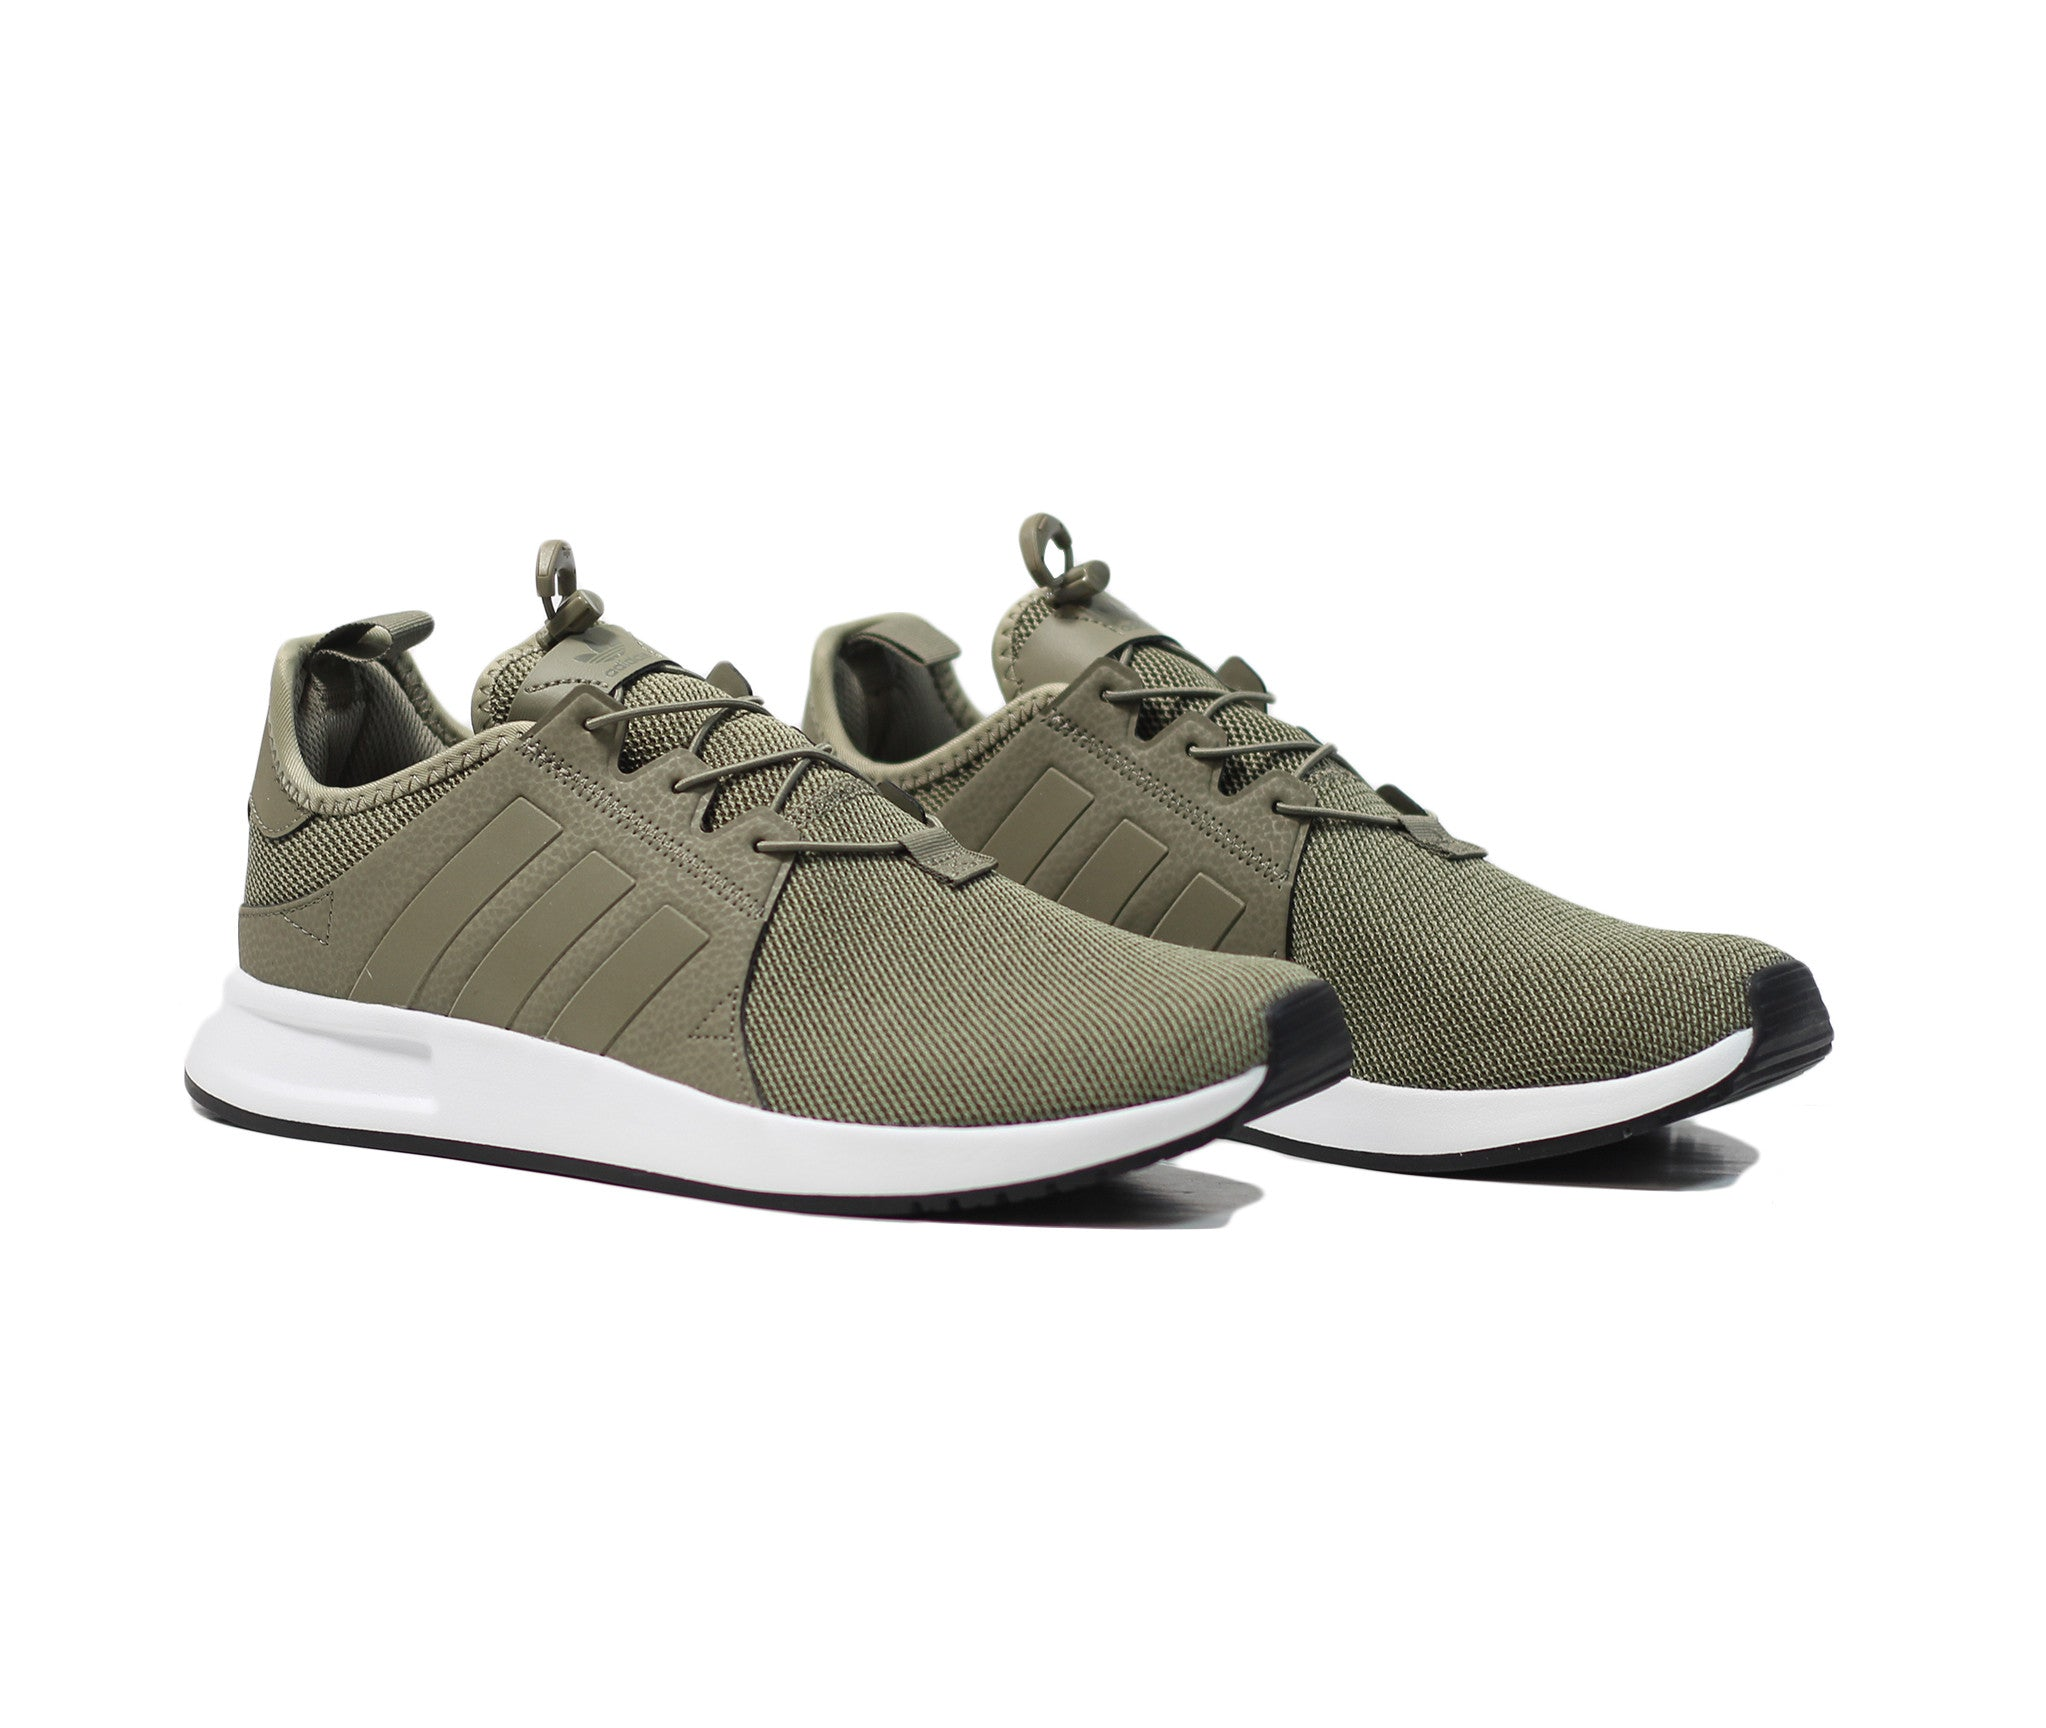 Adidas X PLR - Trace Cargo – History of New York Powered by  Sneaker Lounge fa69b66a9